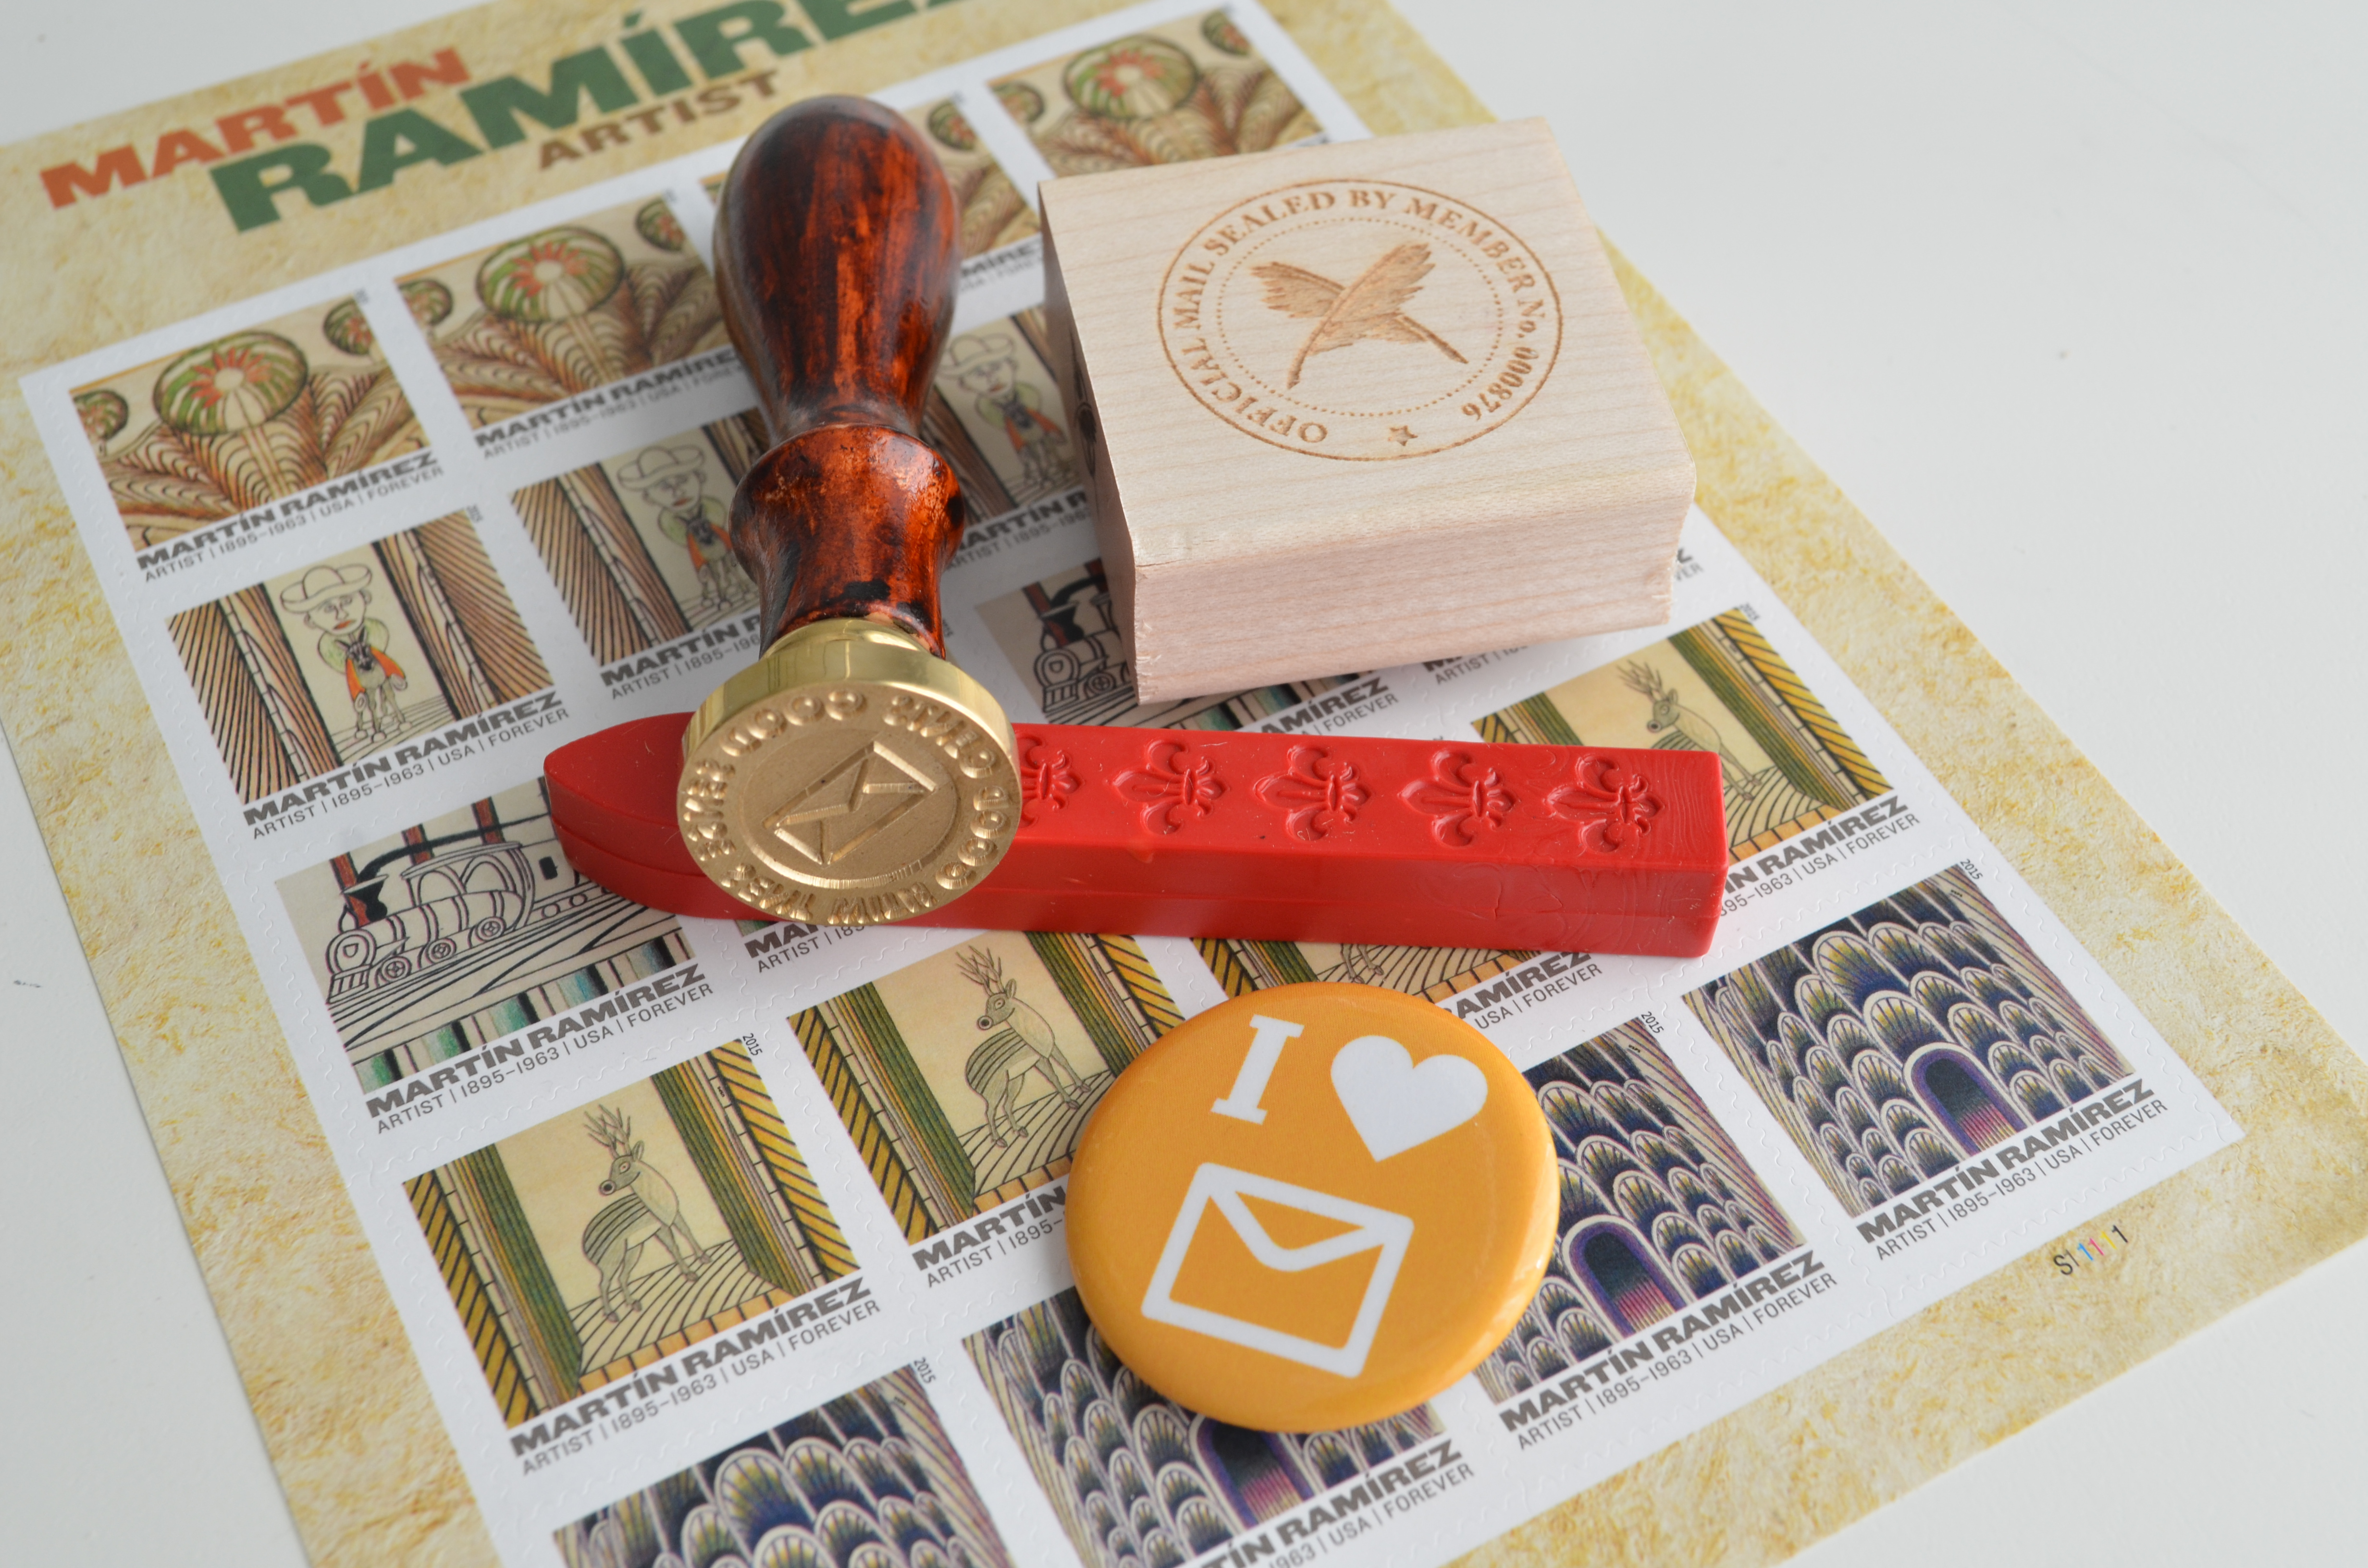 letter writers alliance wax seal member stamp postage stamp